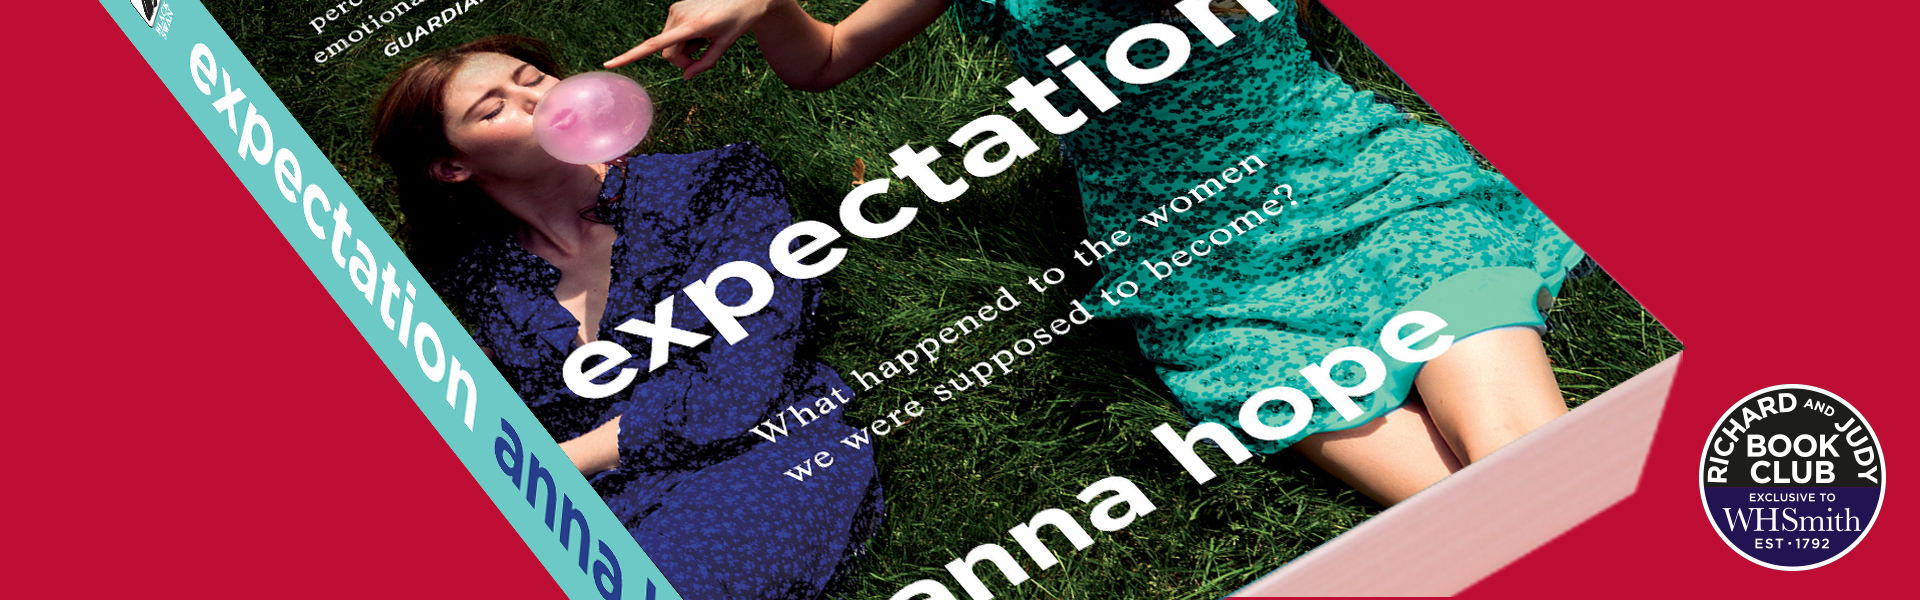 Richard and Judy Introduce Expectation by Anna Hope